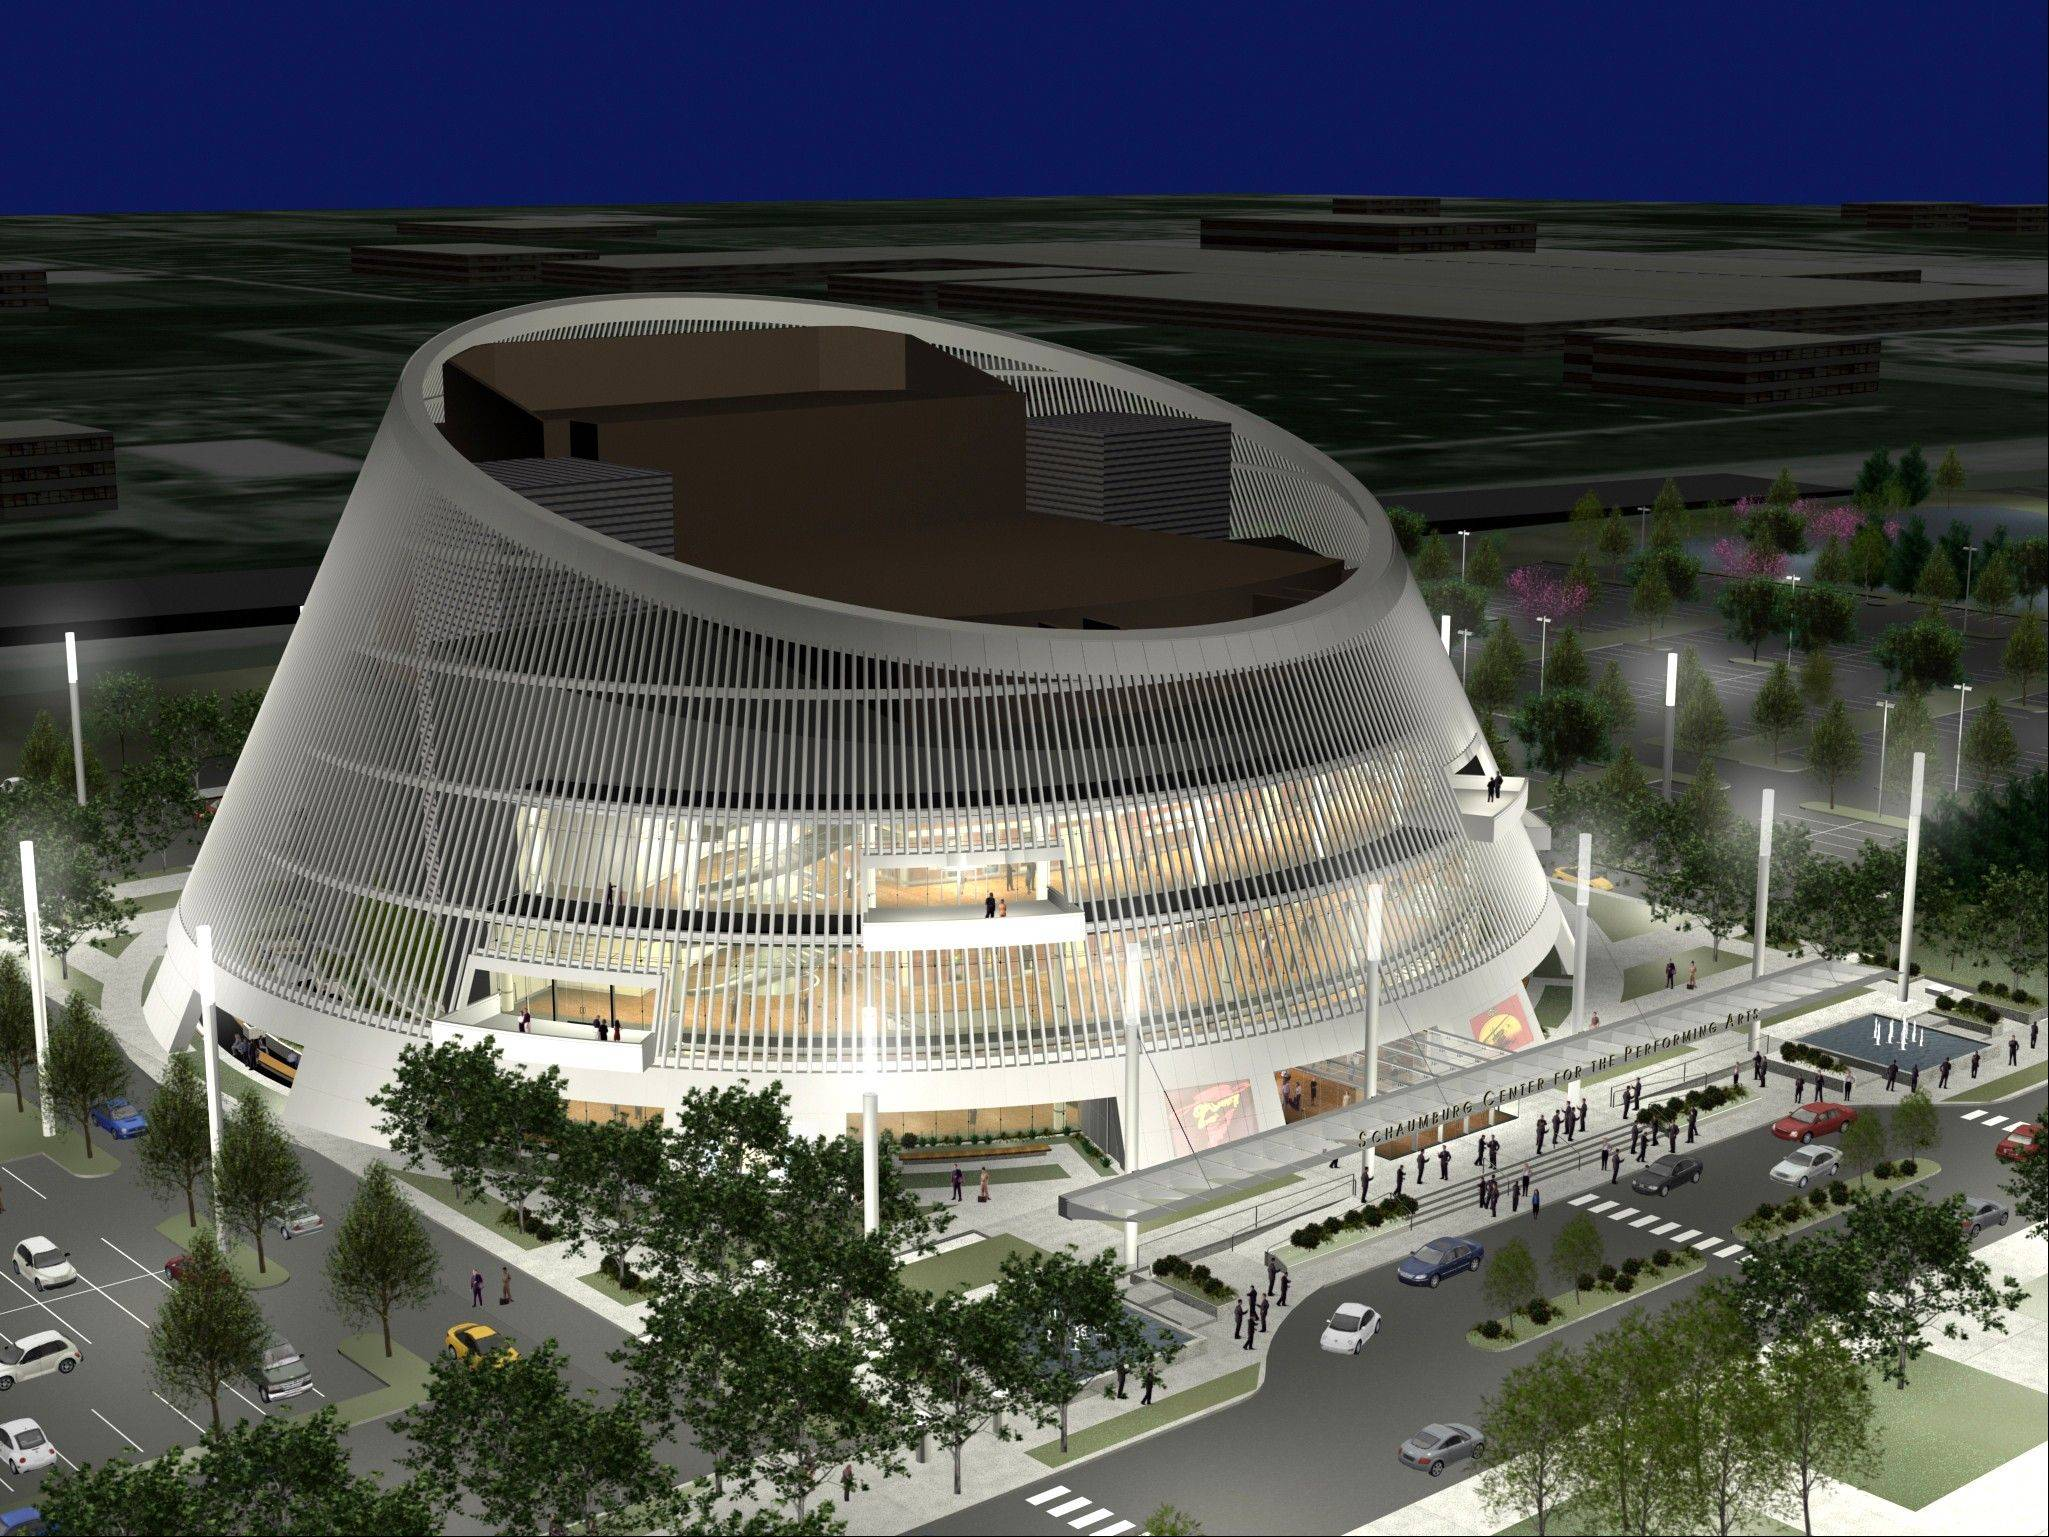 A rendering of Schaumburg's planned 2,400-seat Performing Arts Center. The village still hopes to build it next to the Schaumburg Convention Center, but the project currently isn't planned within the next five years. The village initially hoped to open it in 2006.